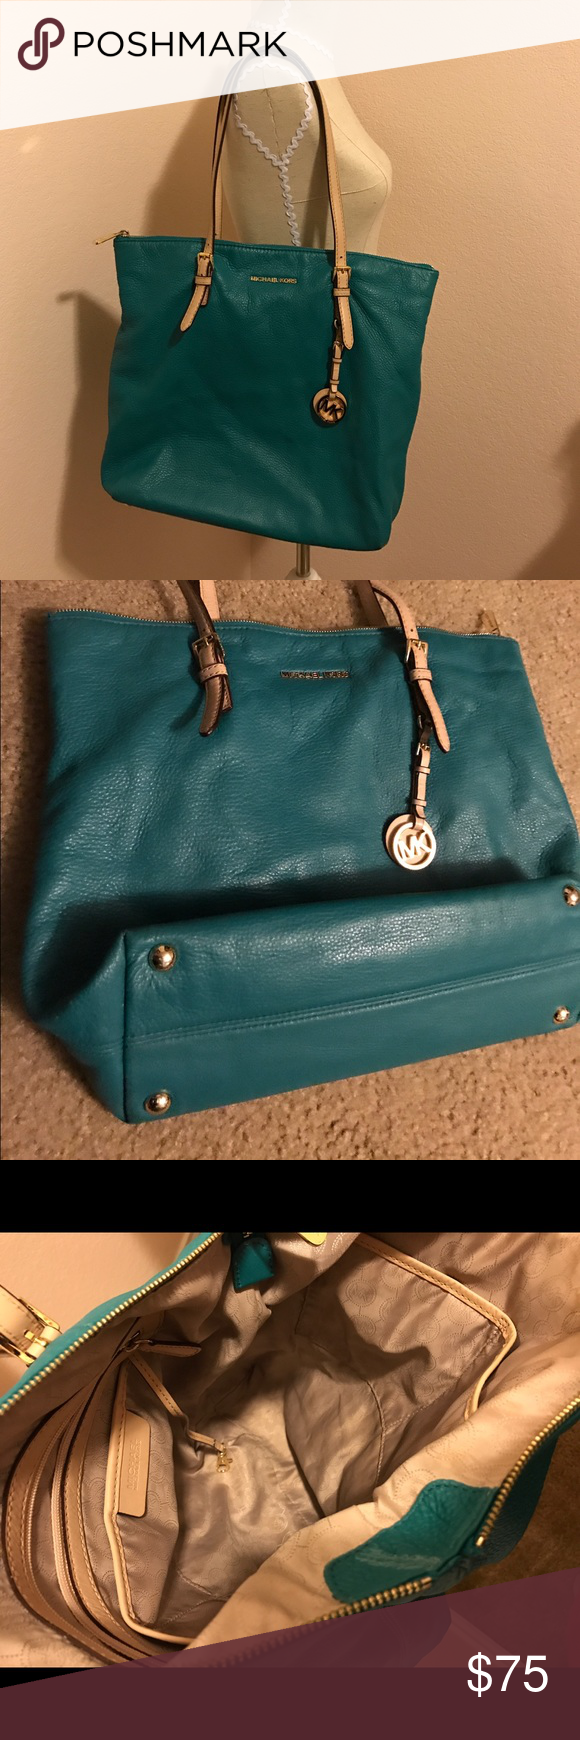 Micheal Kors tore Micheal Kors tore 100% Authentic. No damage to the leather no stains to interior. Good condition. Bags Totes